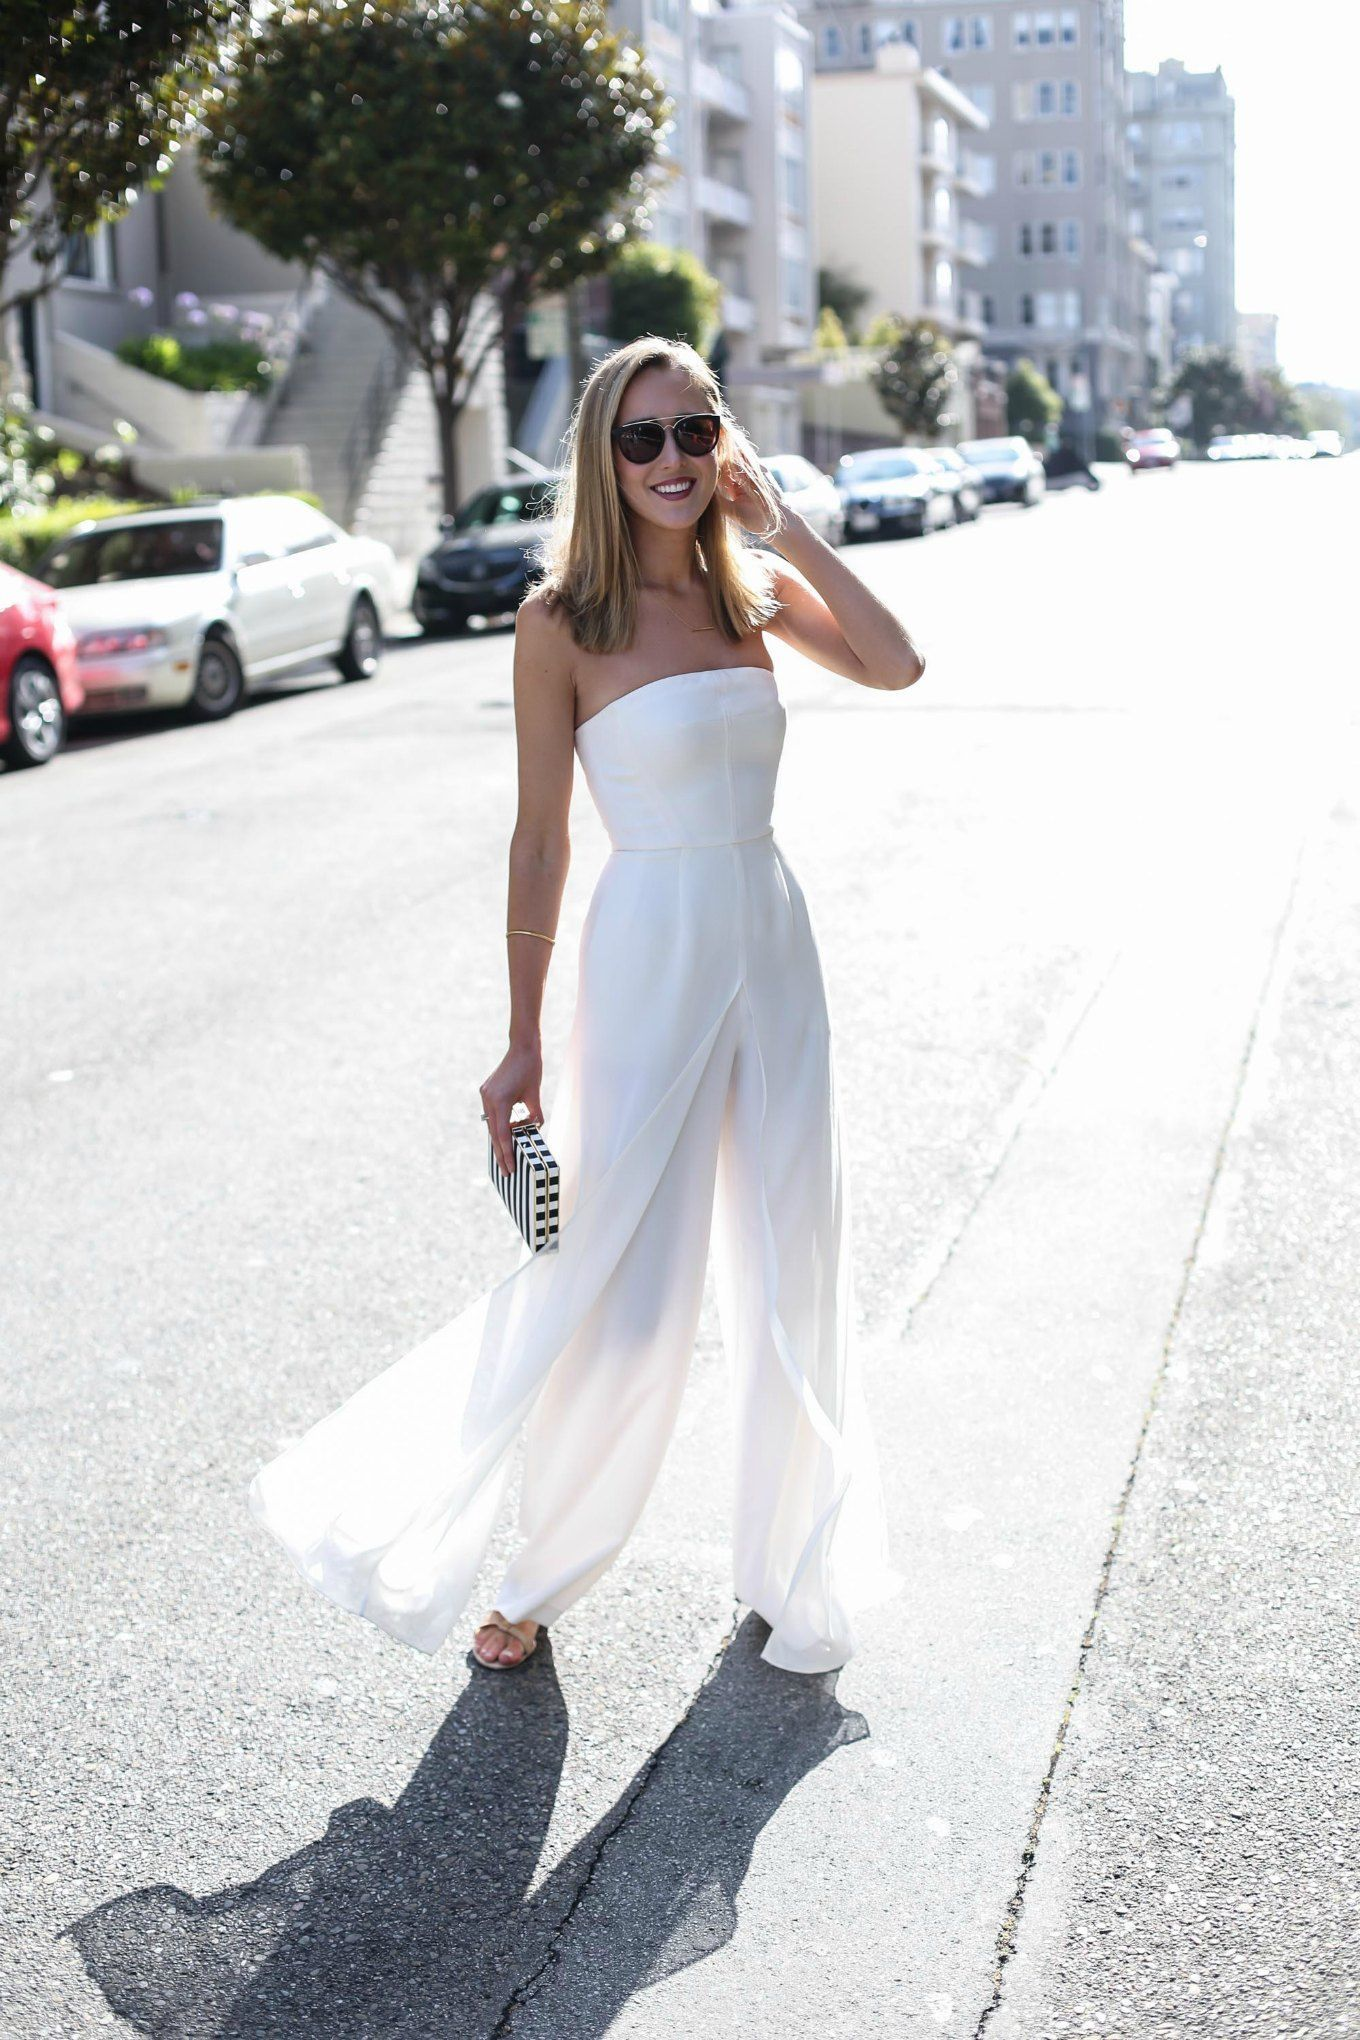 10 Rehearsal Dinner Dresses The Bride Can Wear #summerdinneroutfits 10 Rehearsal Dinner Dresses The Bride Can Wear #summerdinneroutfits